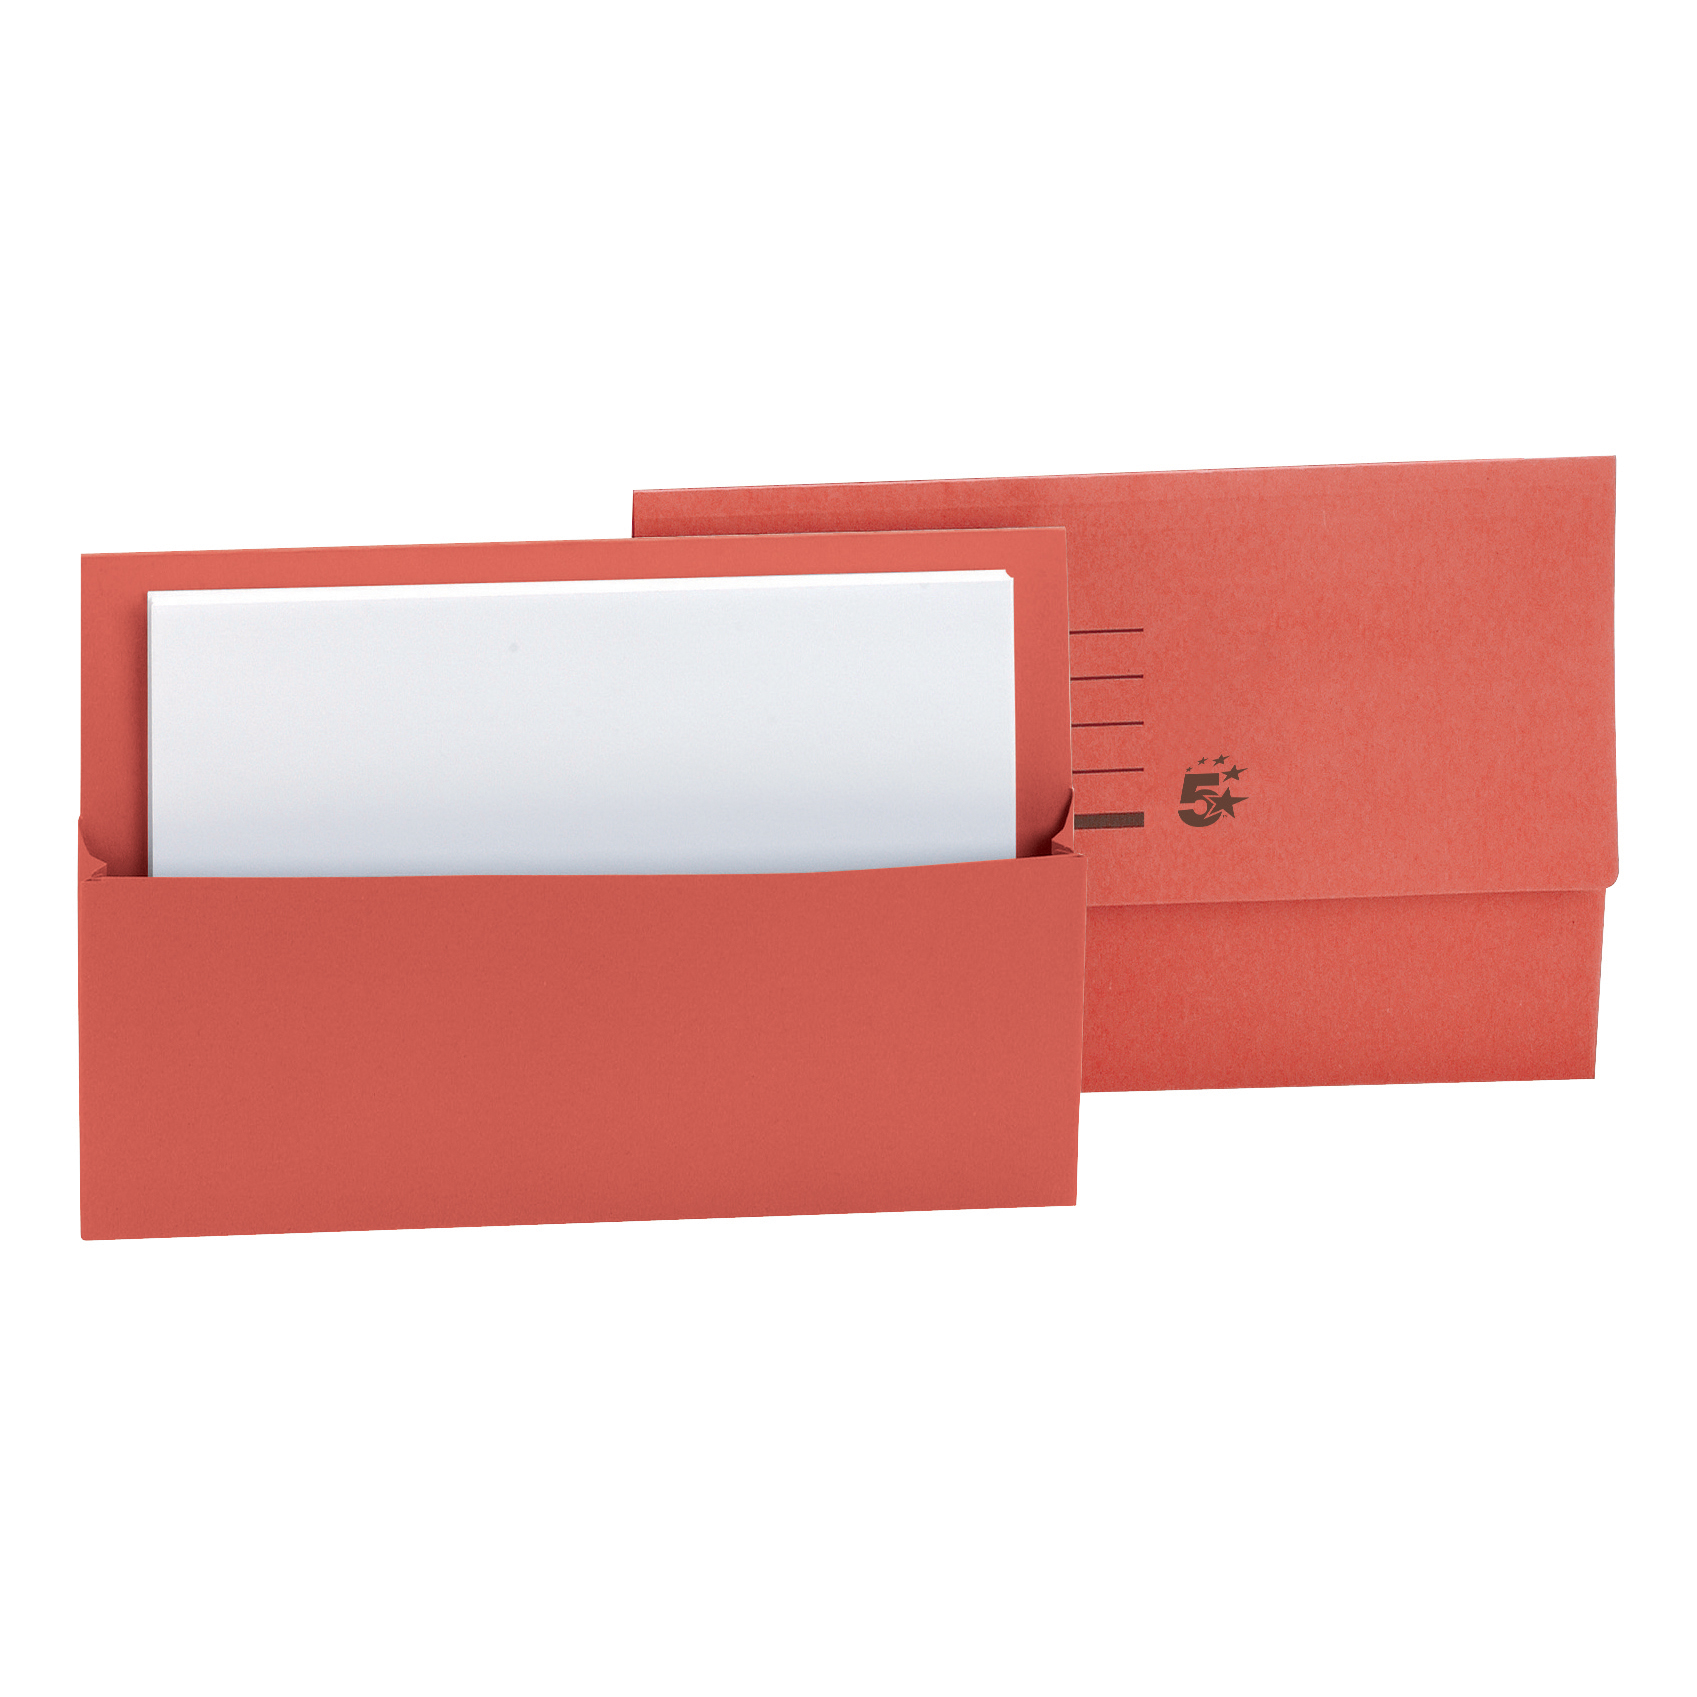 5 Star Office Document Wallet Half Flap 250gsm Recycled Capacity 32mm Foolscap Red Pack 50